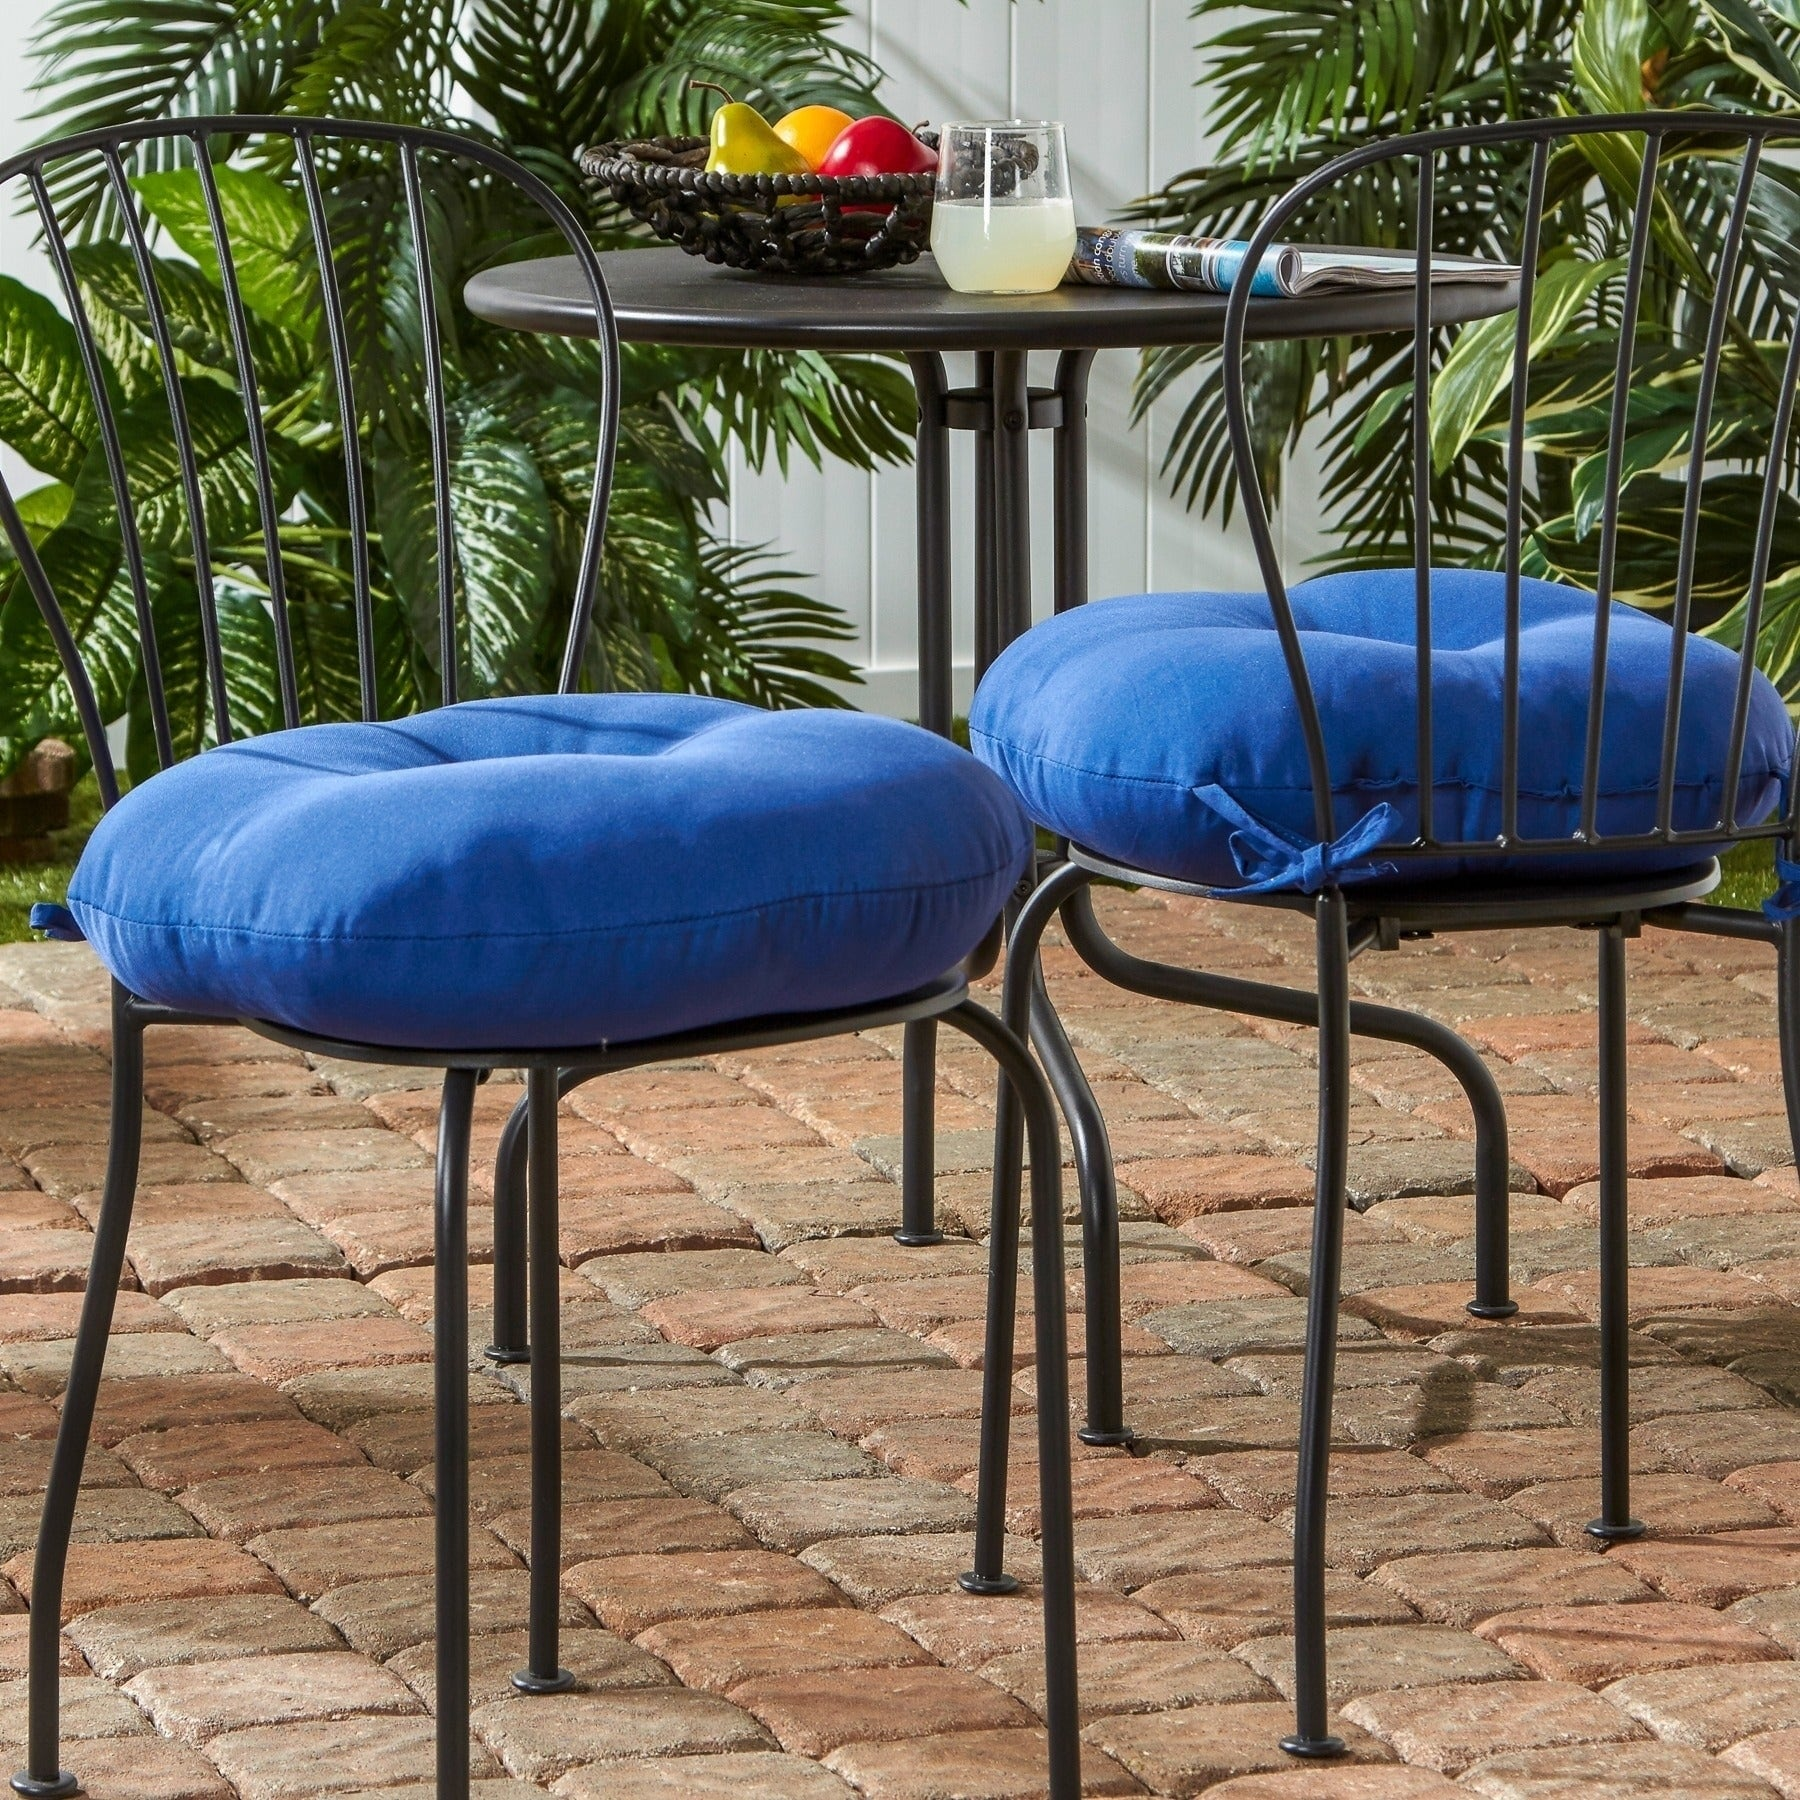 Driftwood 18 Inch Round Outdoor Marine Blue Bistro Chair Cushion Set Of 2 By Havenside Home 18w X 18l Overstock 22751555